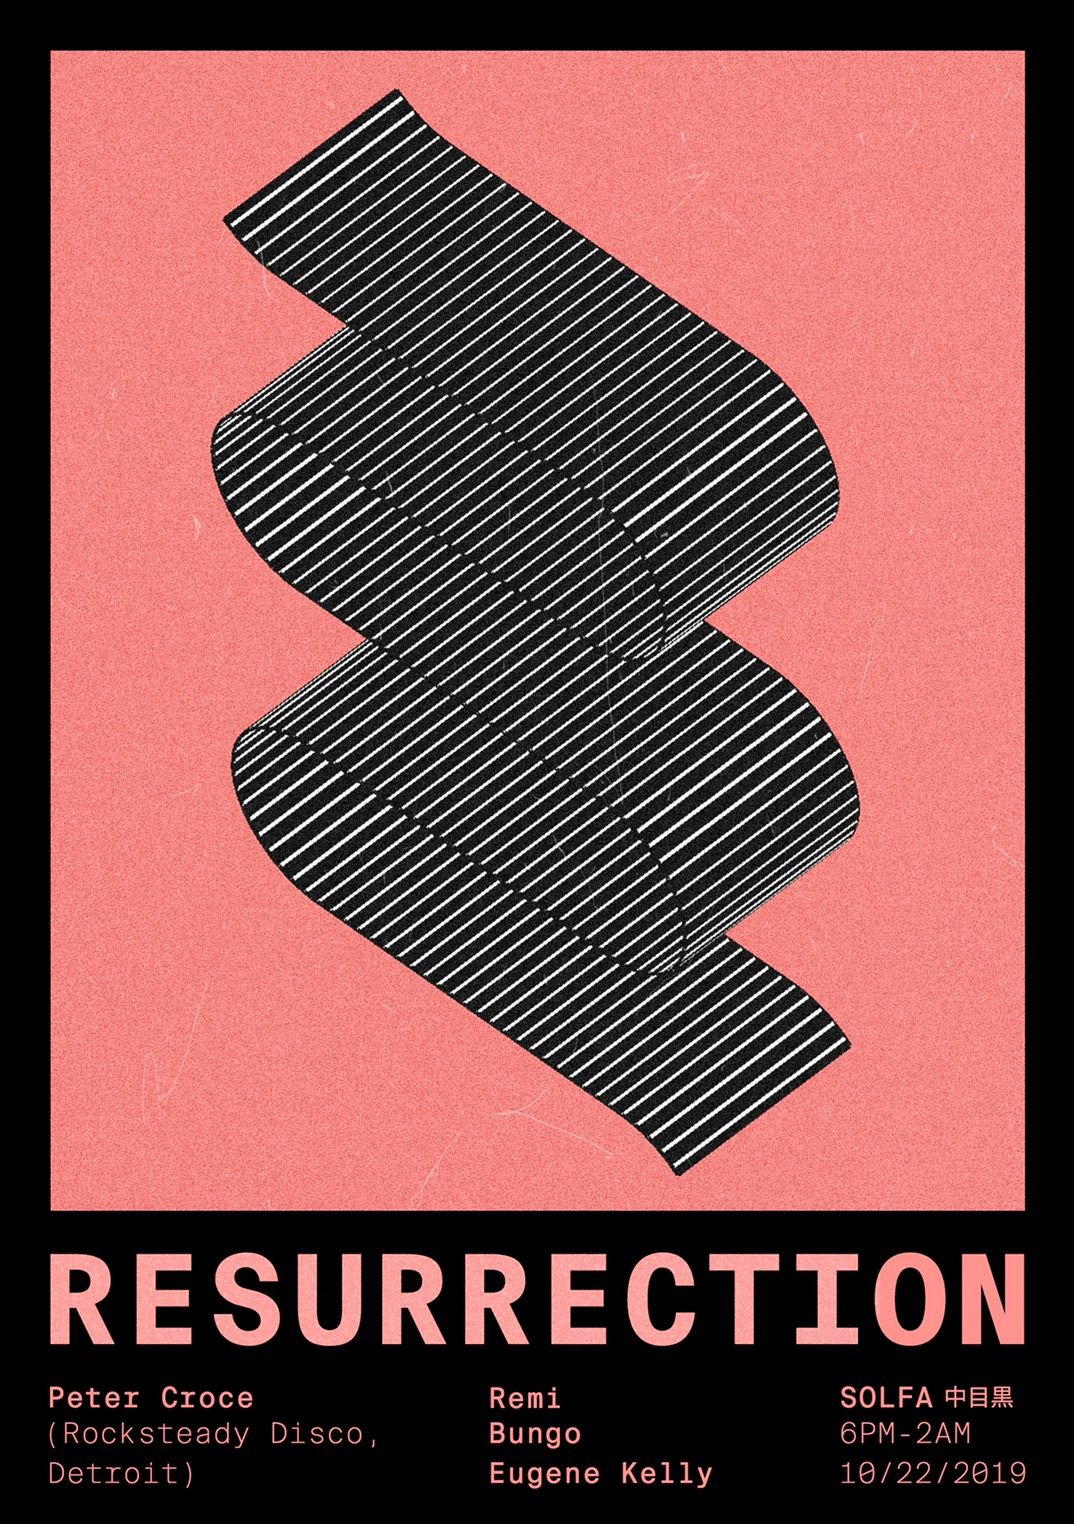 Resurrection: feat. Peter Croce (Rocksteady Disco, Detroit)